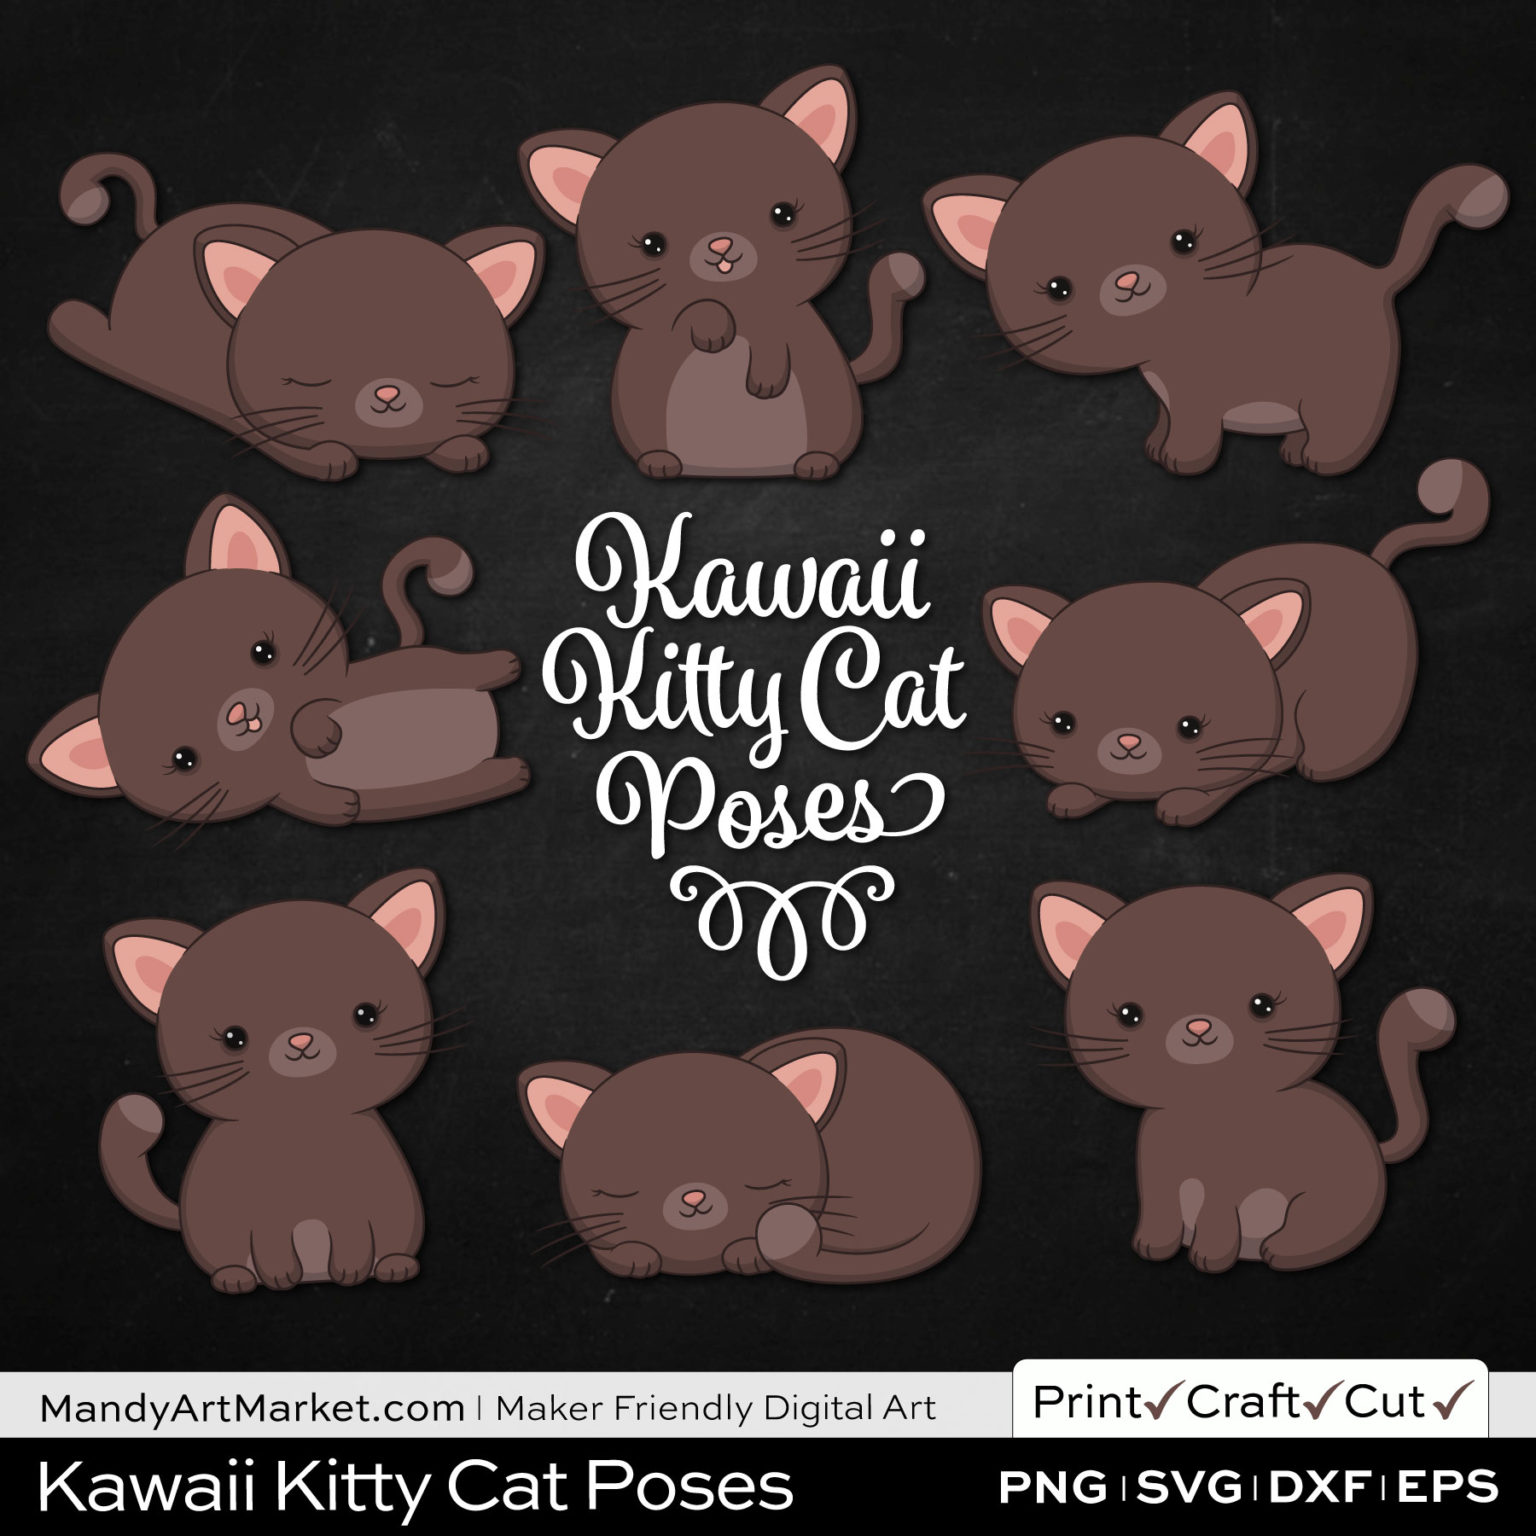 Cocoa Brown Kawaii Kitty Cat Poses Clipart on Black Background